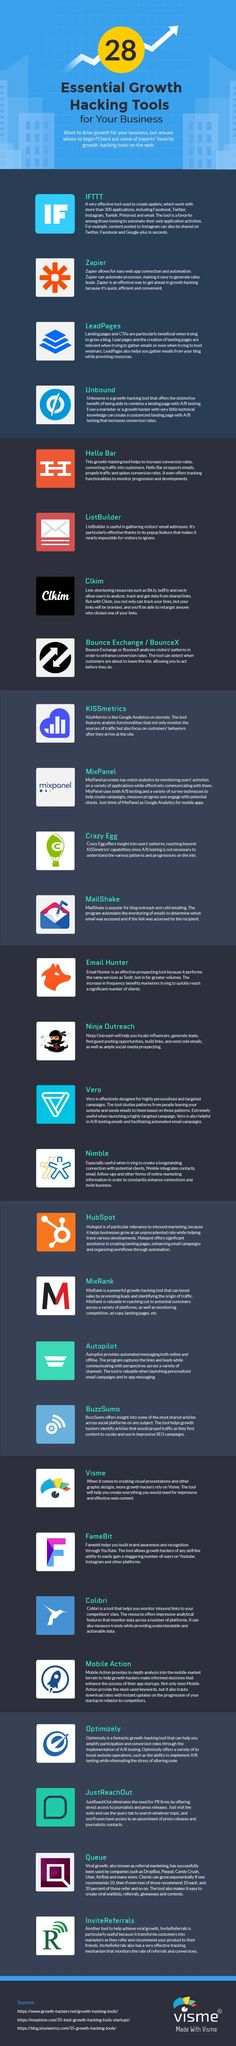 28 Essential Growth Hacking Tools to Rapidly Build Your Business [Infographic] Sales And Marketing, Marketing Tools, Business Marketing, Online Marketing, Digital Marketing, Media Marketing, Business Infographics, Content Marketing, Affiliate Marketing